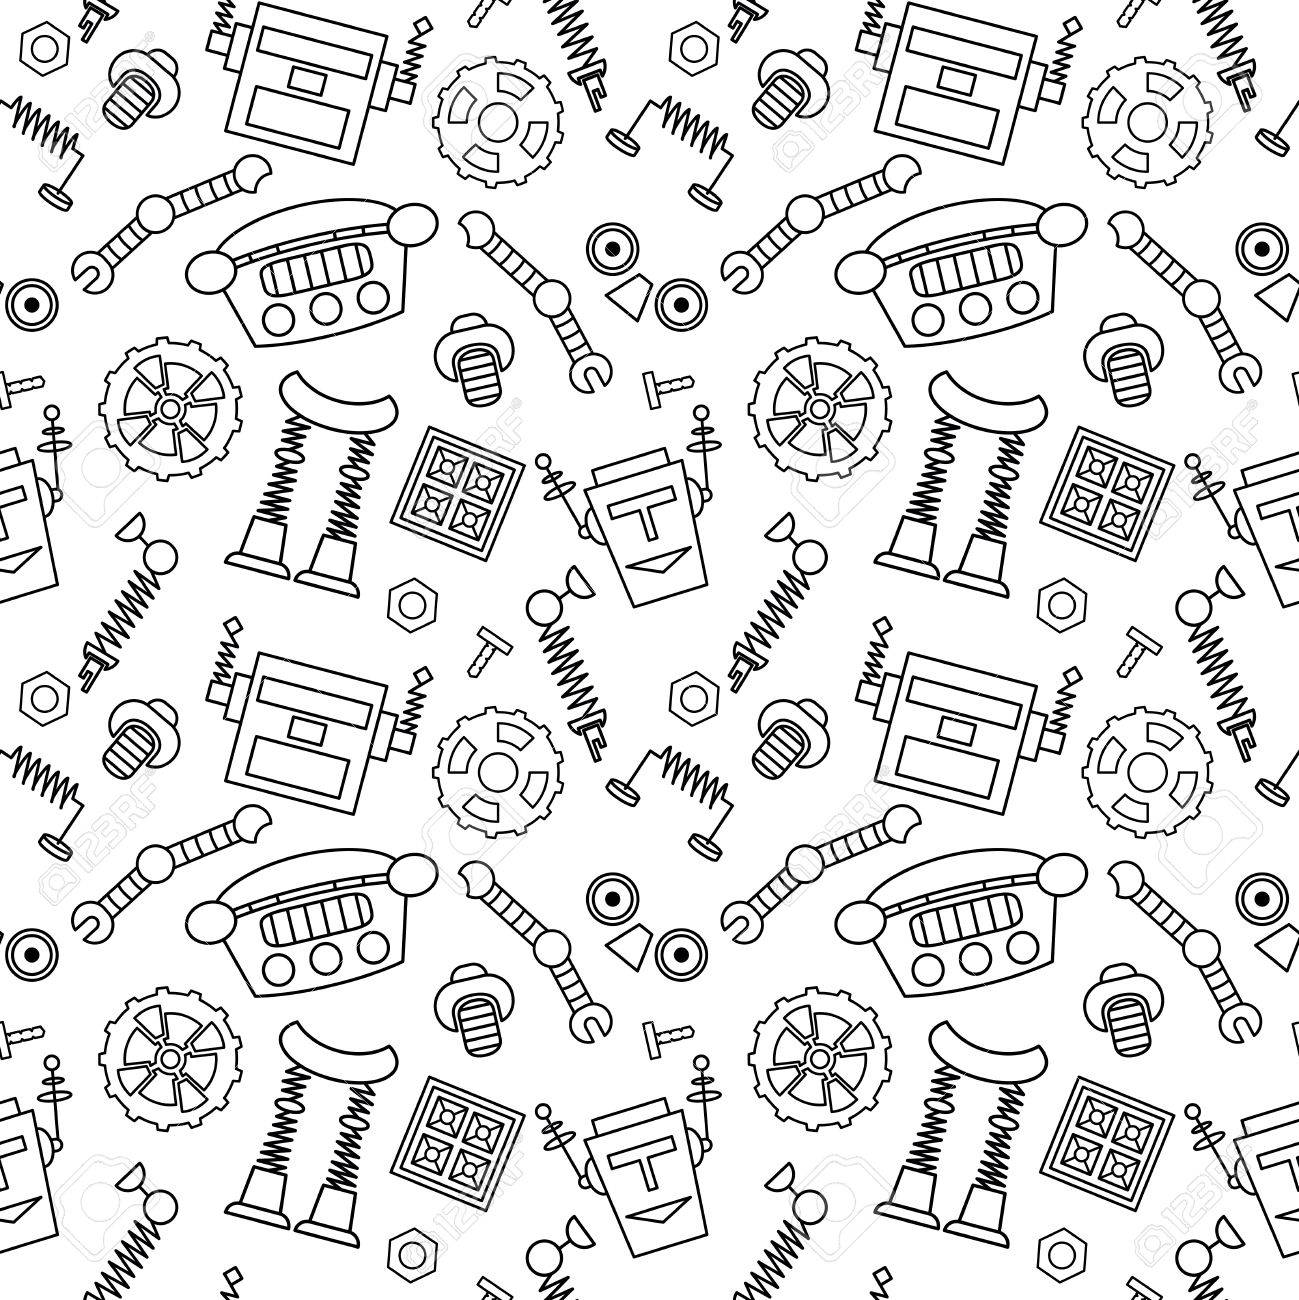 Smart robot parts and details background seamless pattern